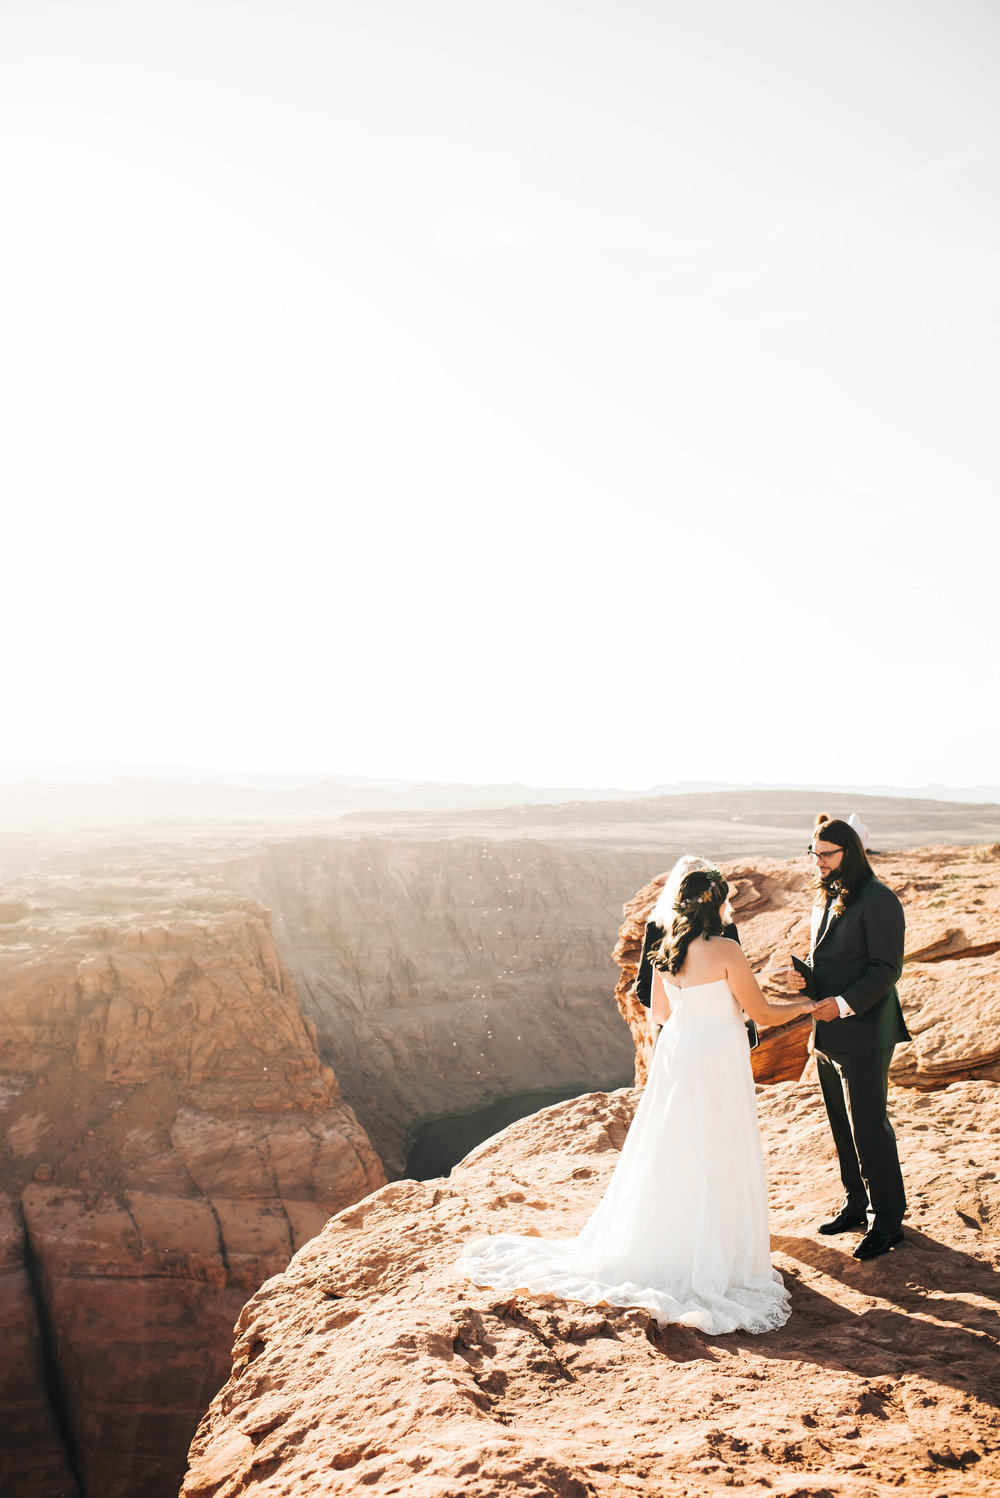 oregon arizon california utah georgia nontraditional adventure wedding elopement photographer-271.jpg